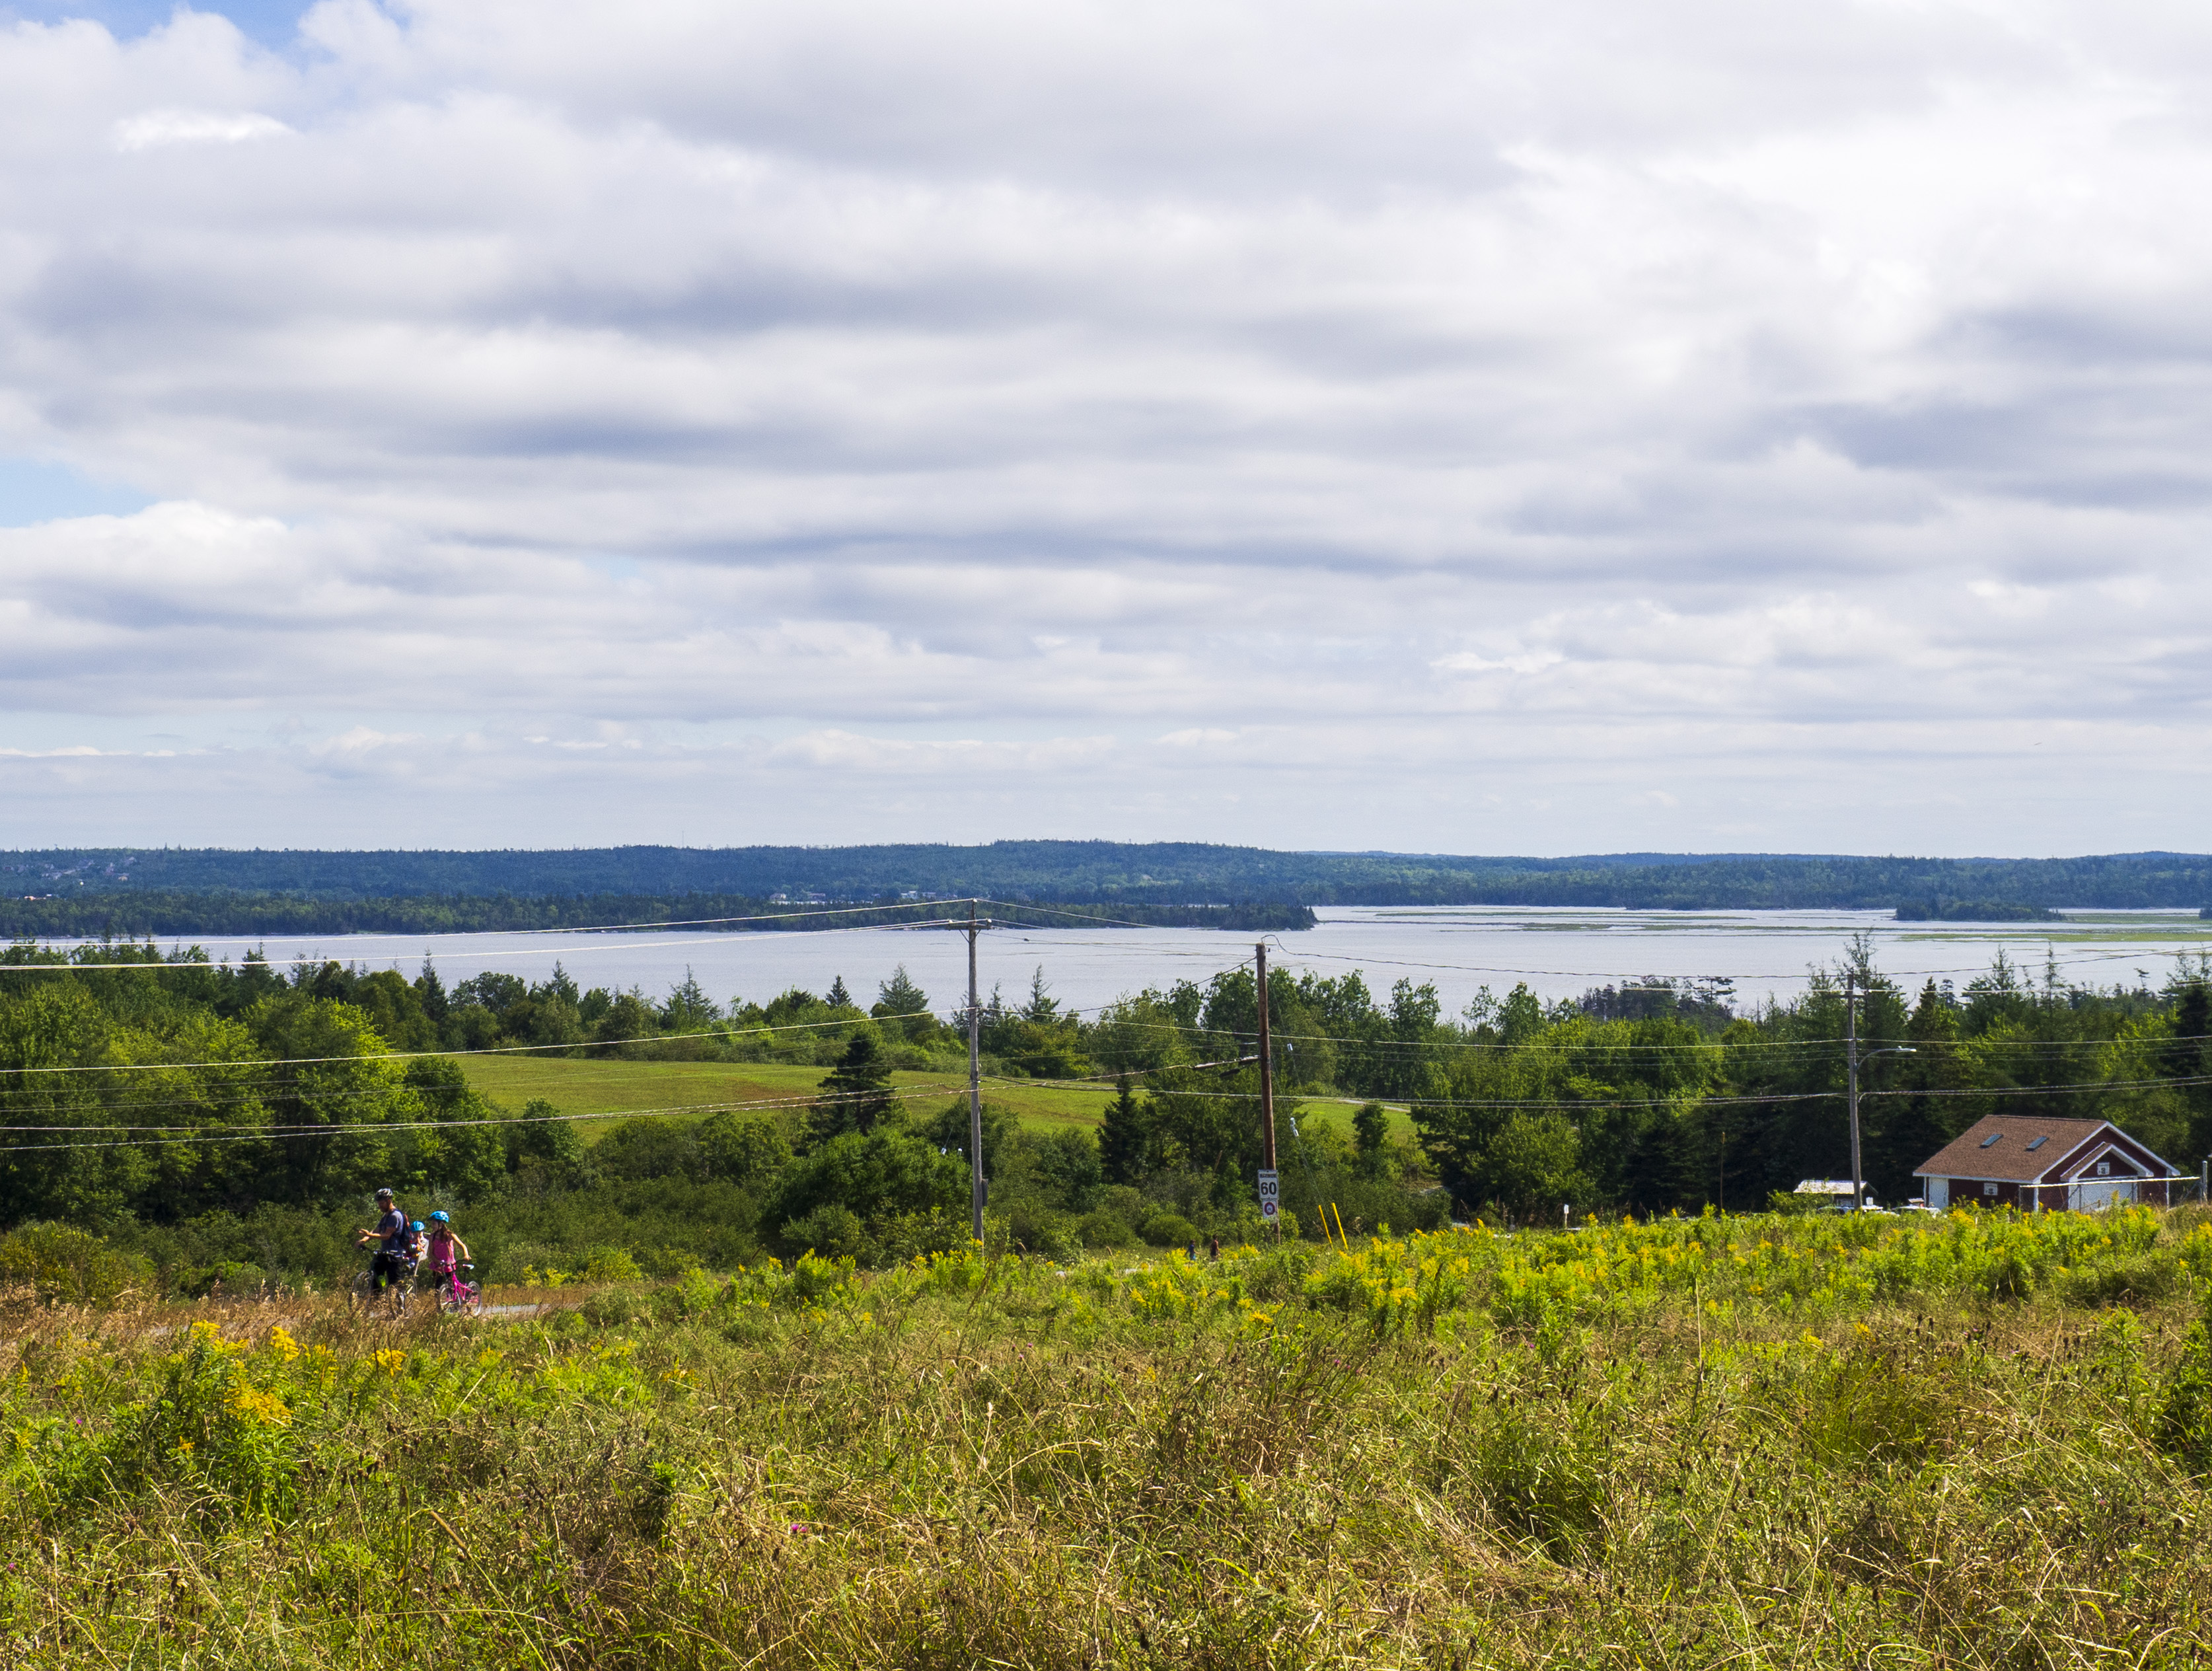 Landscape vista looking east from the hilltop with family cylcing in the foreground and the Cole Harbour Basin in the background.